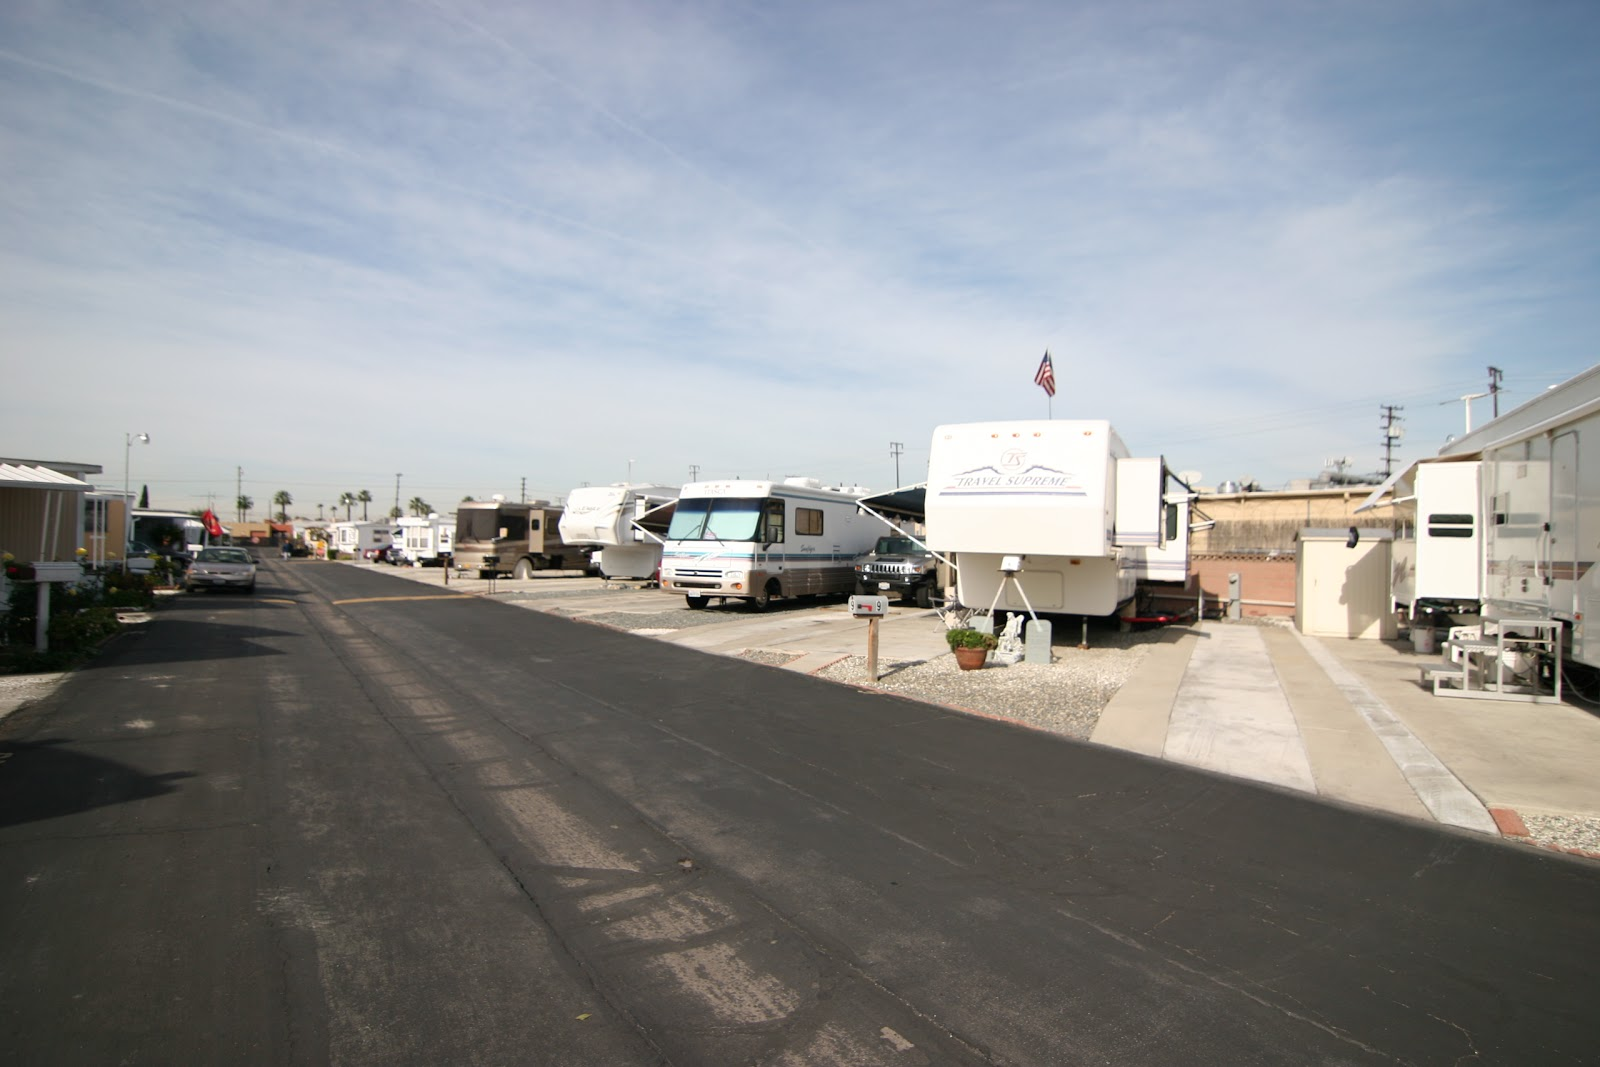 Rosewood Mobile Home RV Park